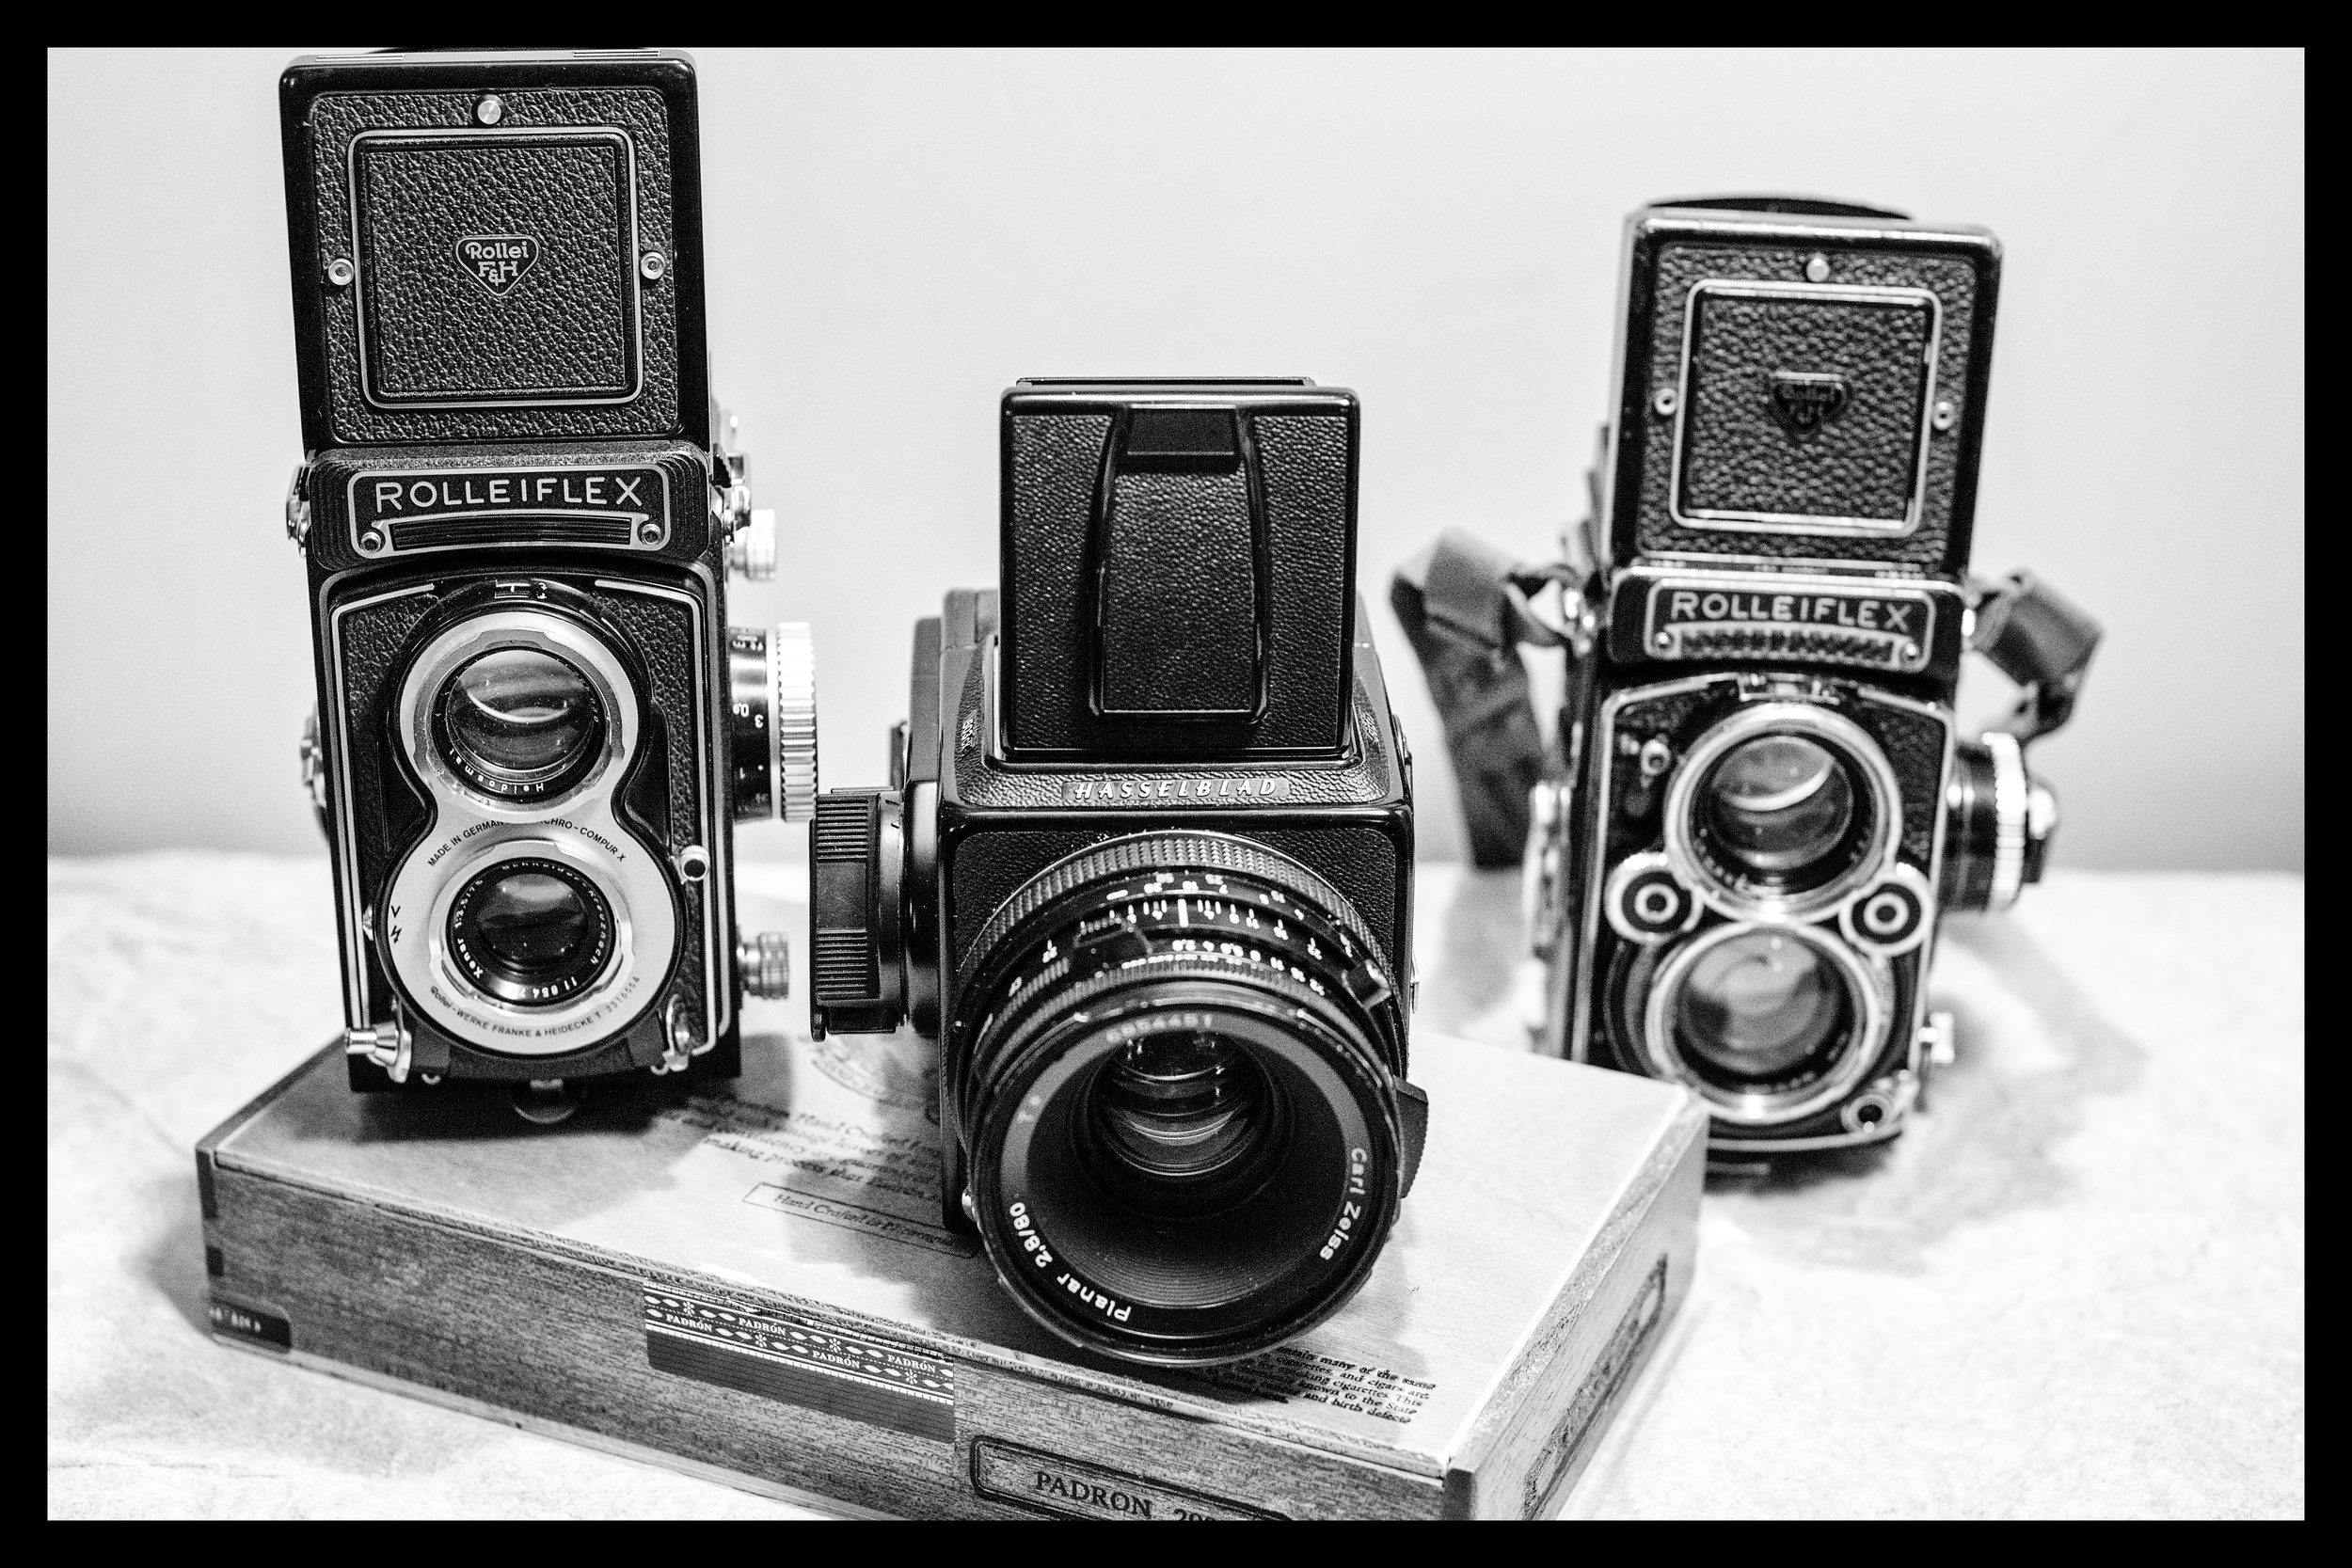 My collection - Rolleiflex T whiteface, Hasselblad 503CX and a Rolleiflex 2.8F